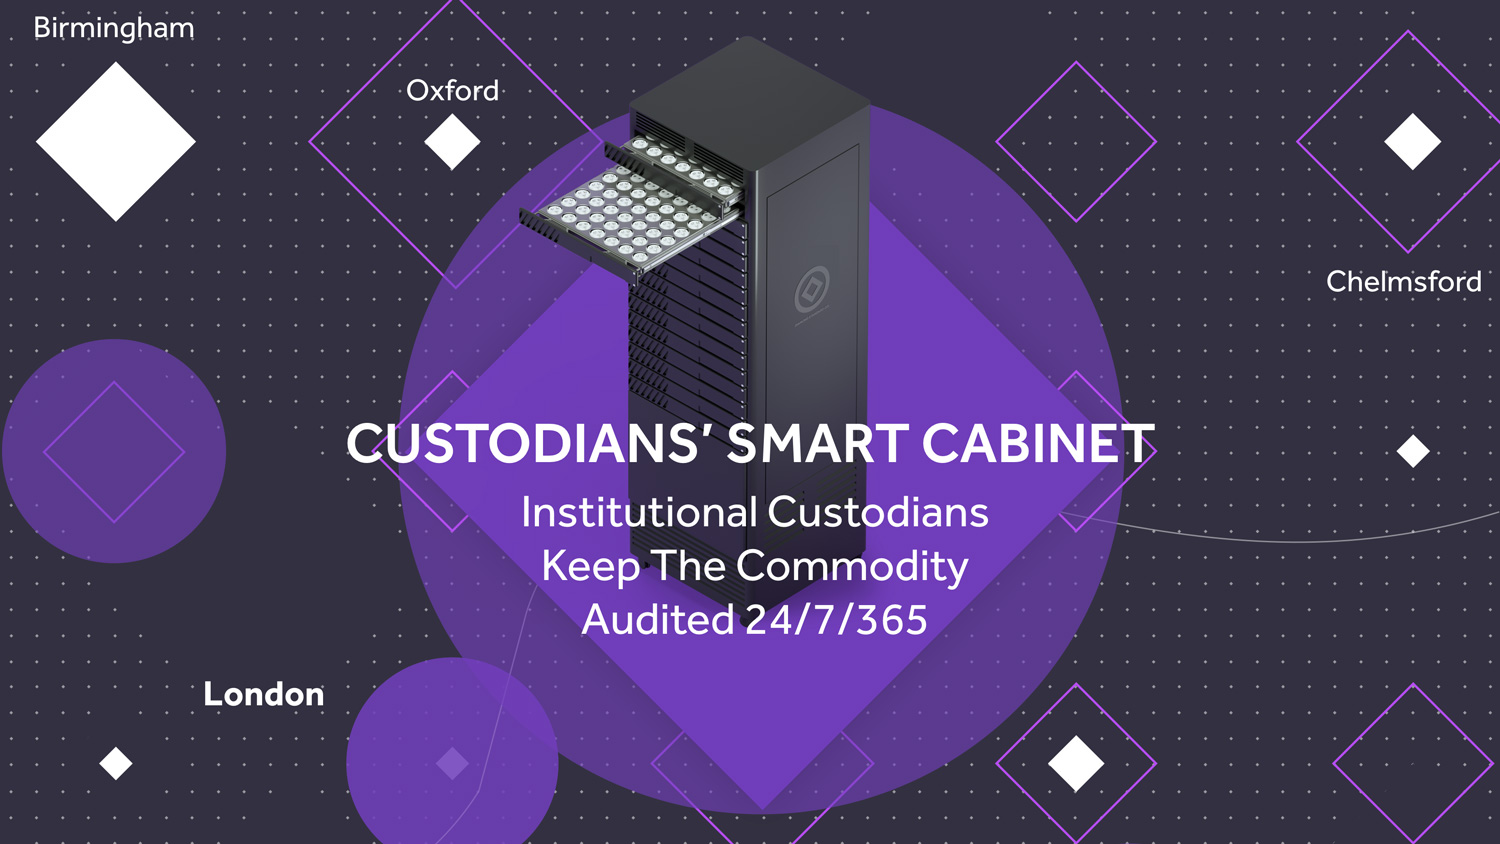 Commodi-ds--SmartCabinet-Web-1500.jpg